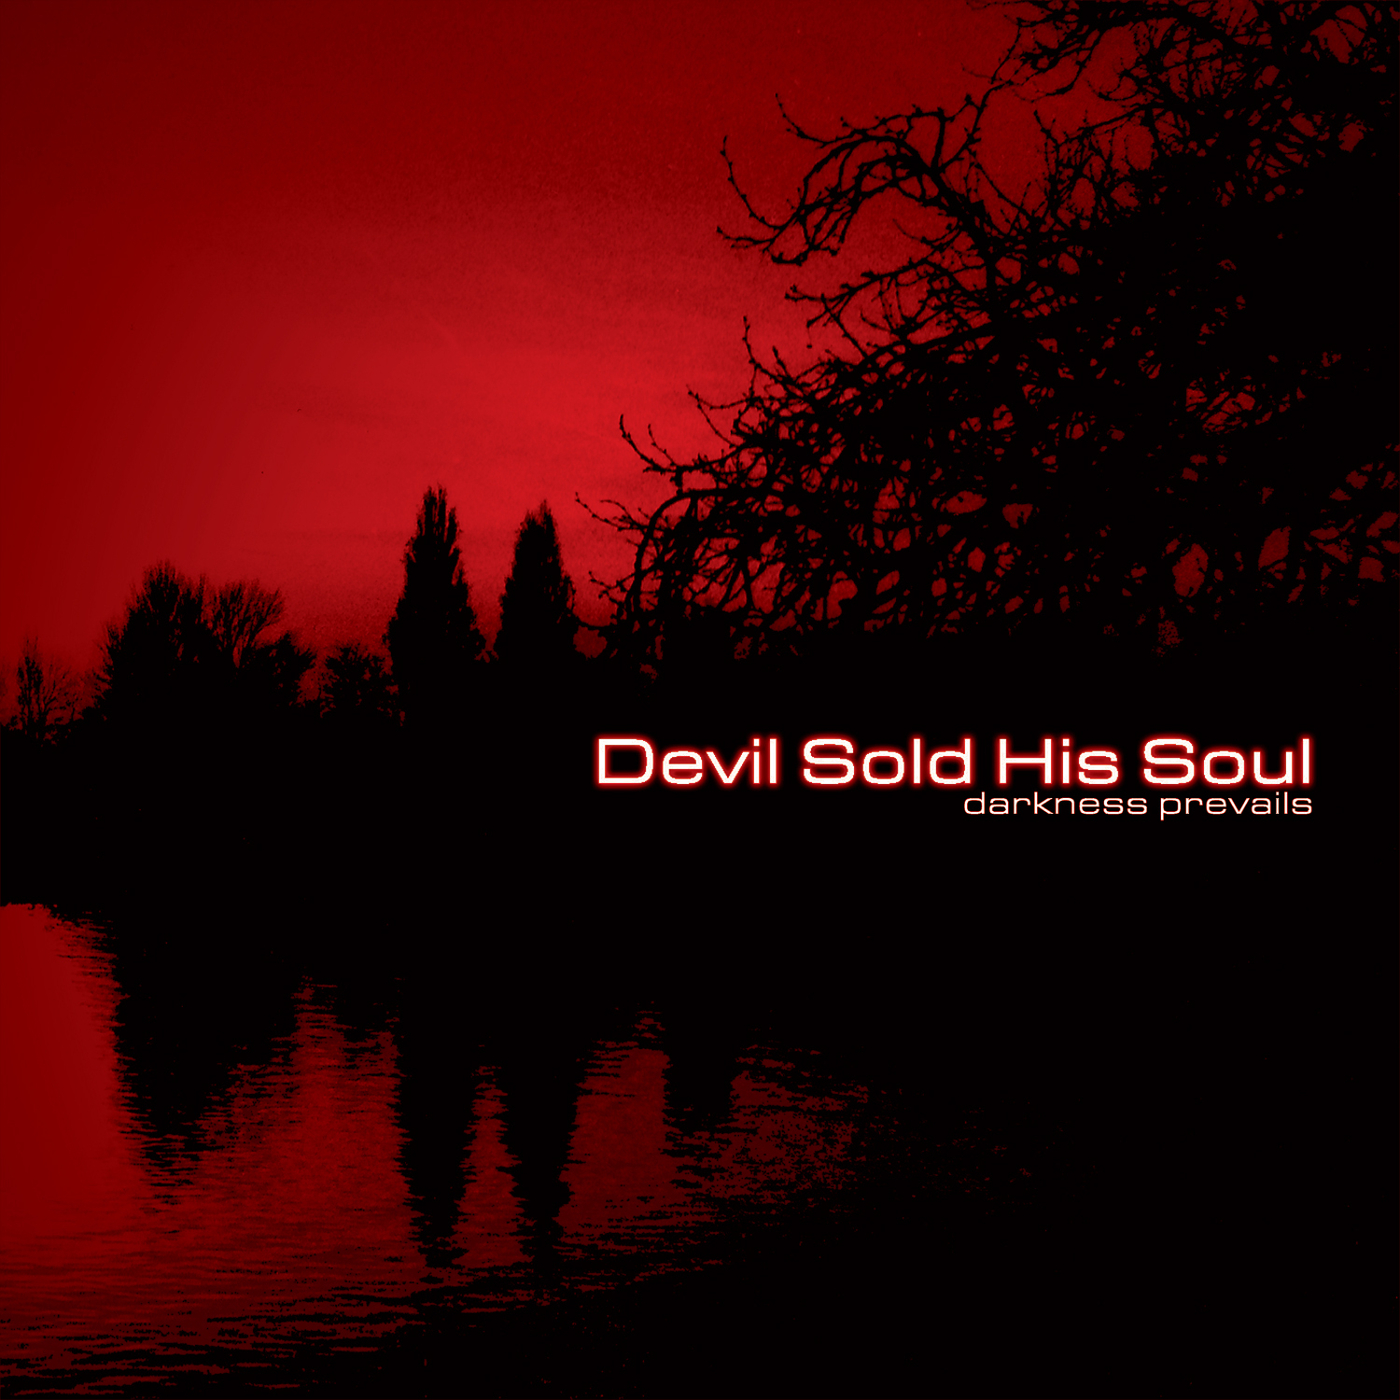 Devil Sold His Soul - Darkness Prevails [Re-release] (2008)